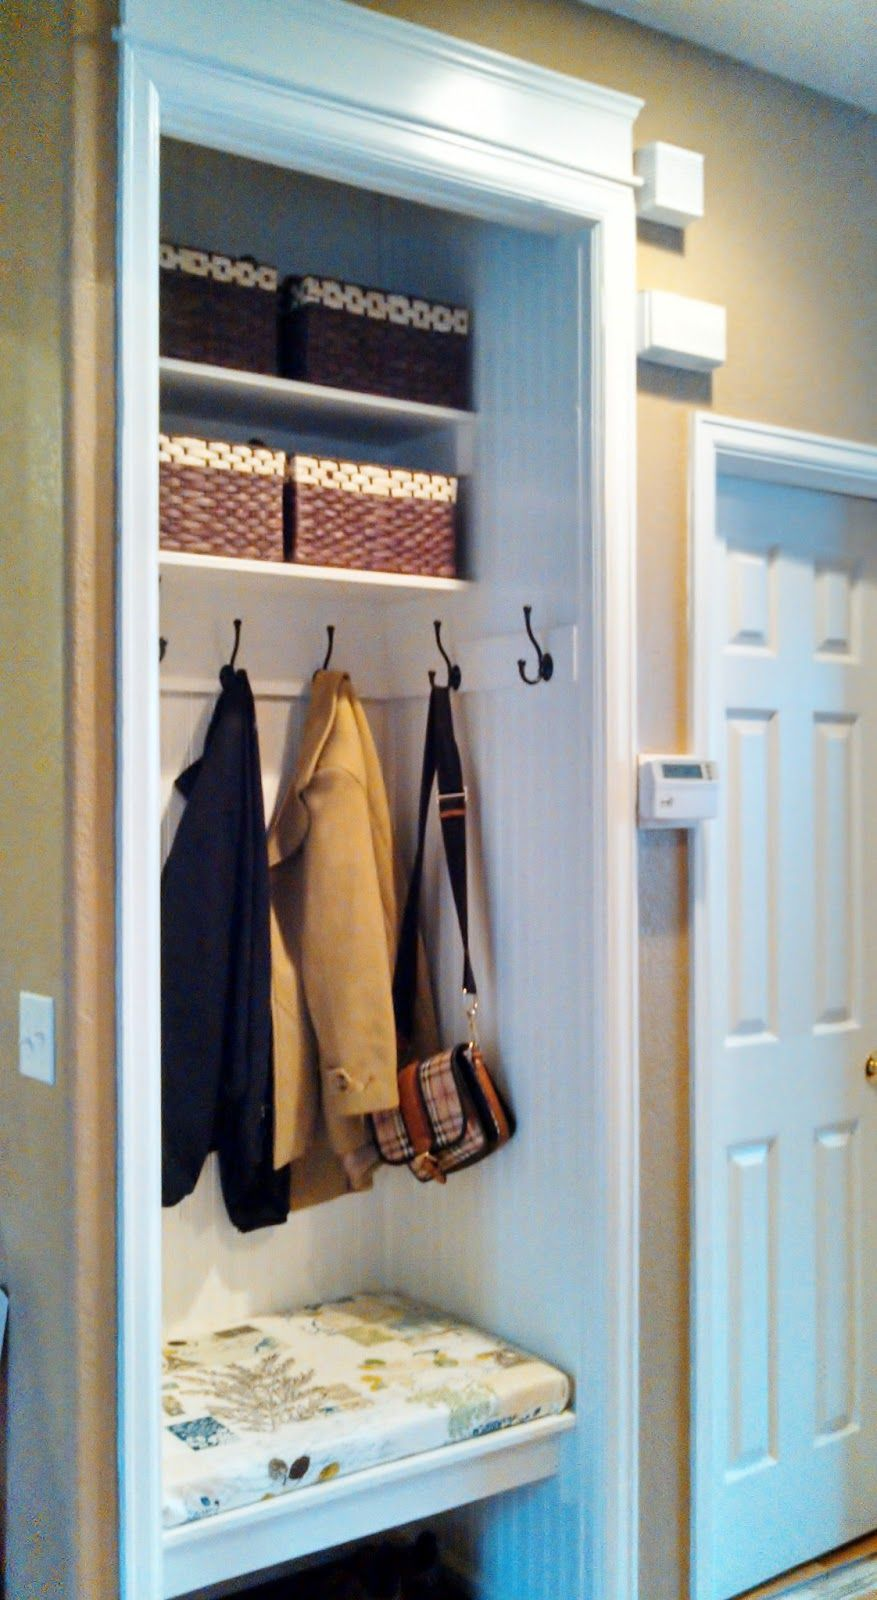 Is Your Coat Closet Small And Cluttered Turn Messy Into An Organized Space With The Help Of These 11 Ideas